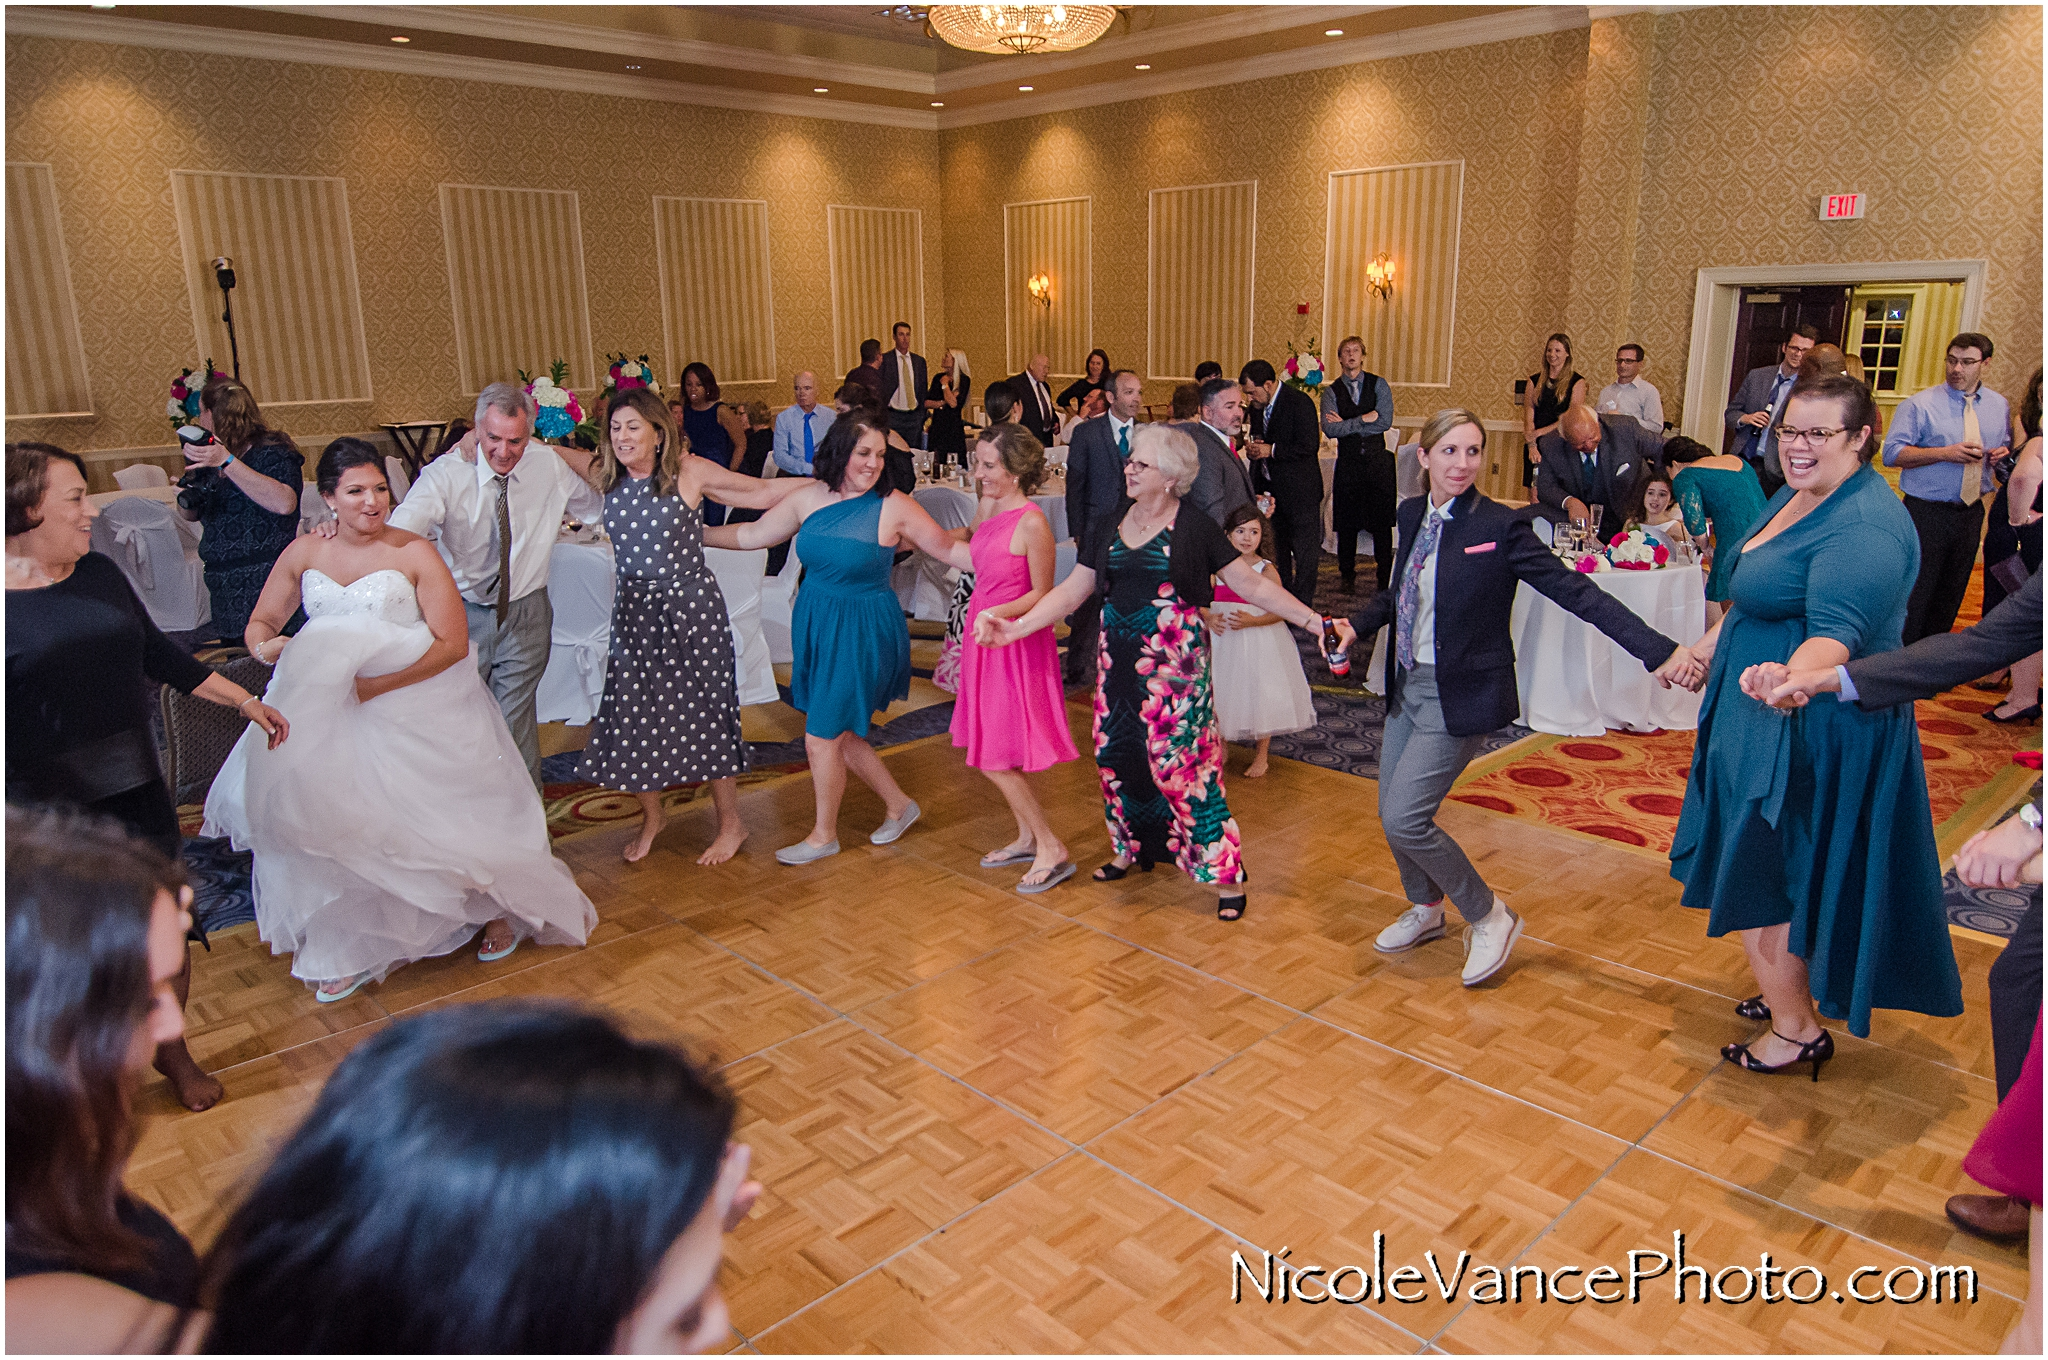 Dancing the Hora at the reception at Virginia Crossings.